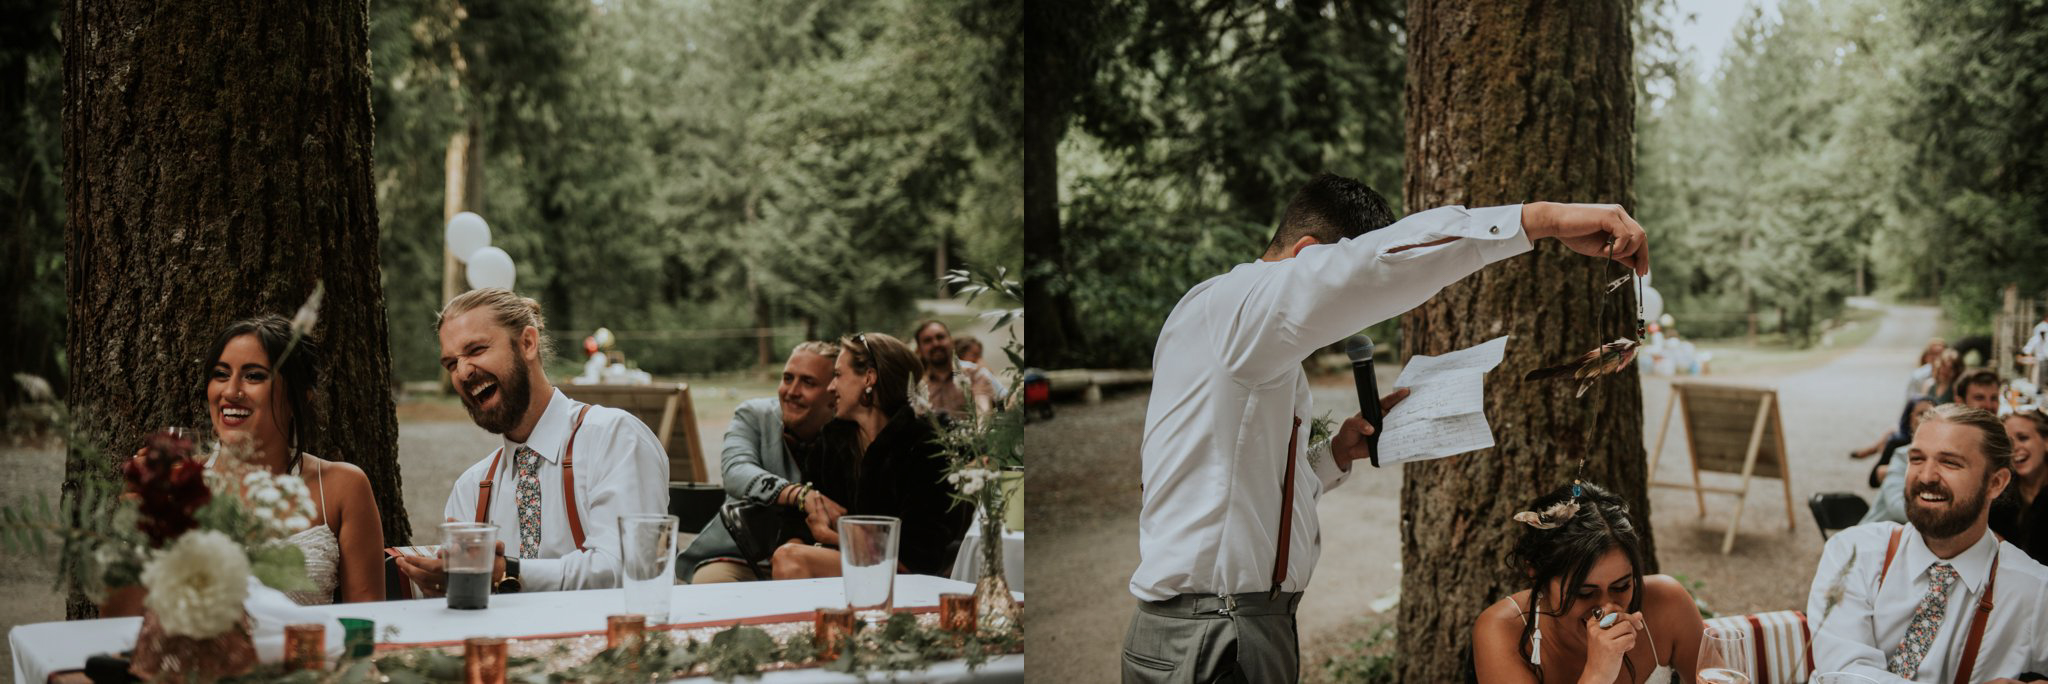 intimate-boho-campfire-wedding-shangri-la-on-the-green-seattle-wedding-photographer-caitlyn-nikula-photography-111.jpg